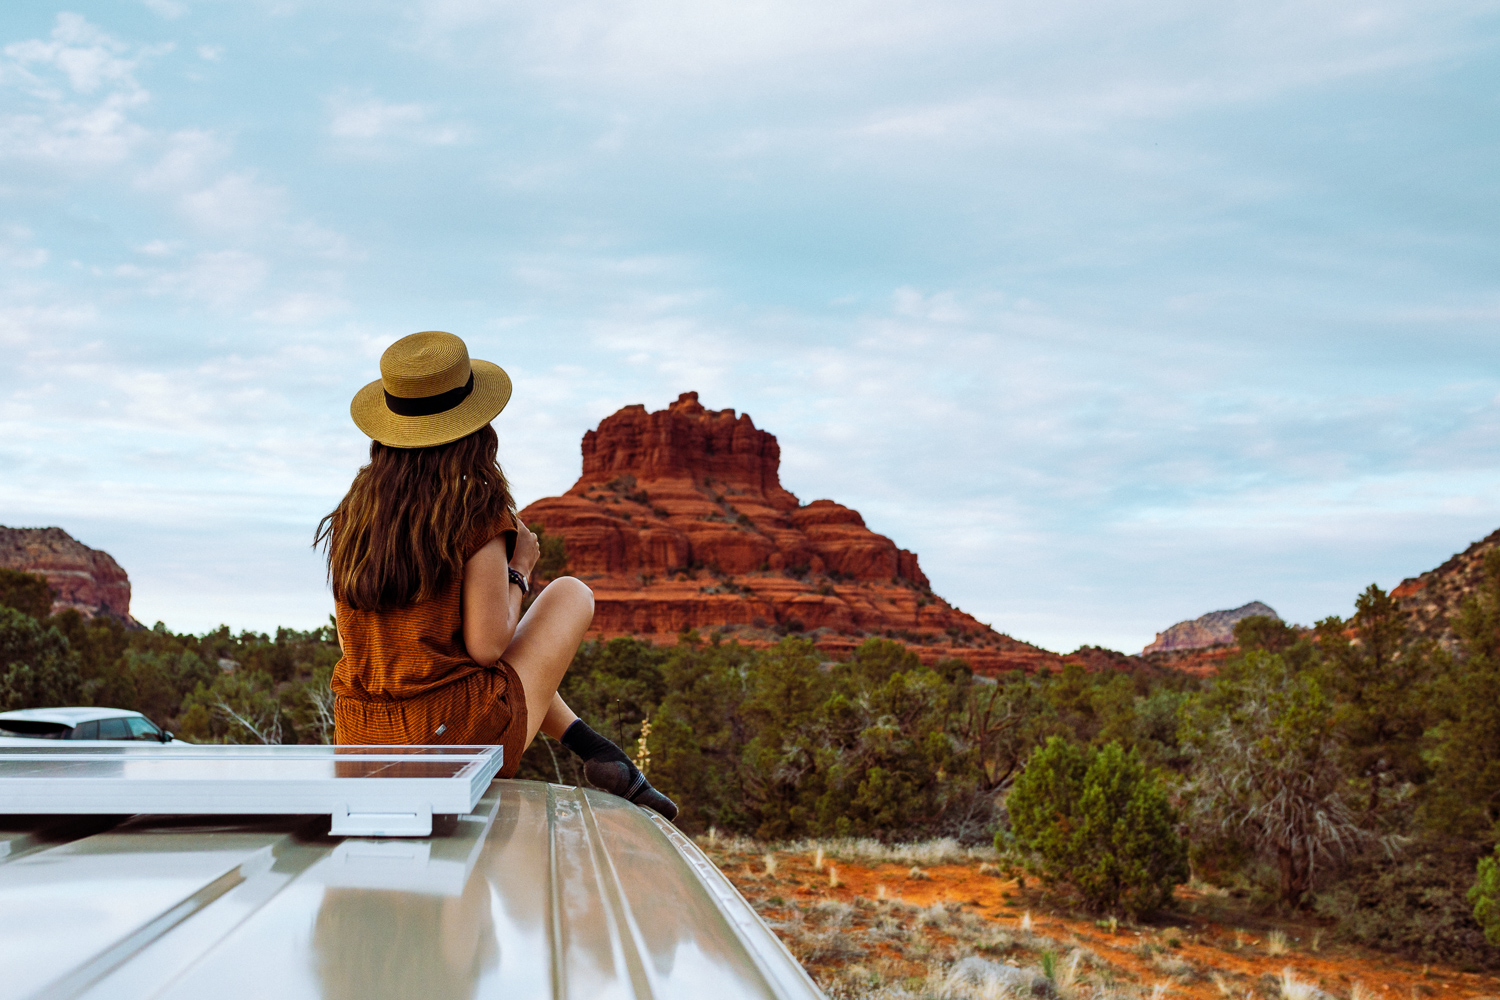 Rachel Off Duty: A Woman Sits on a Campervan in Sedona, USA